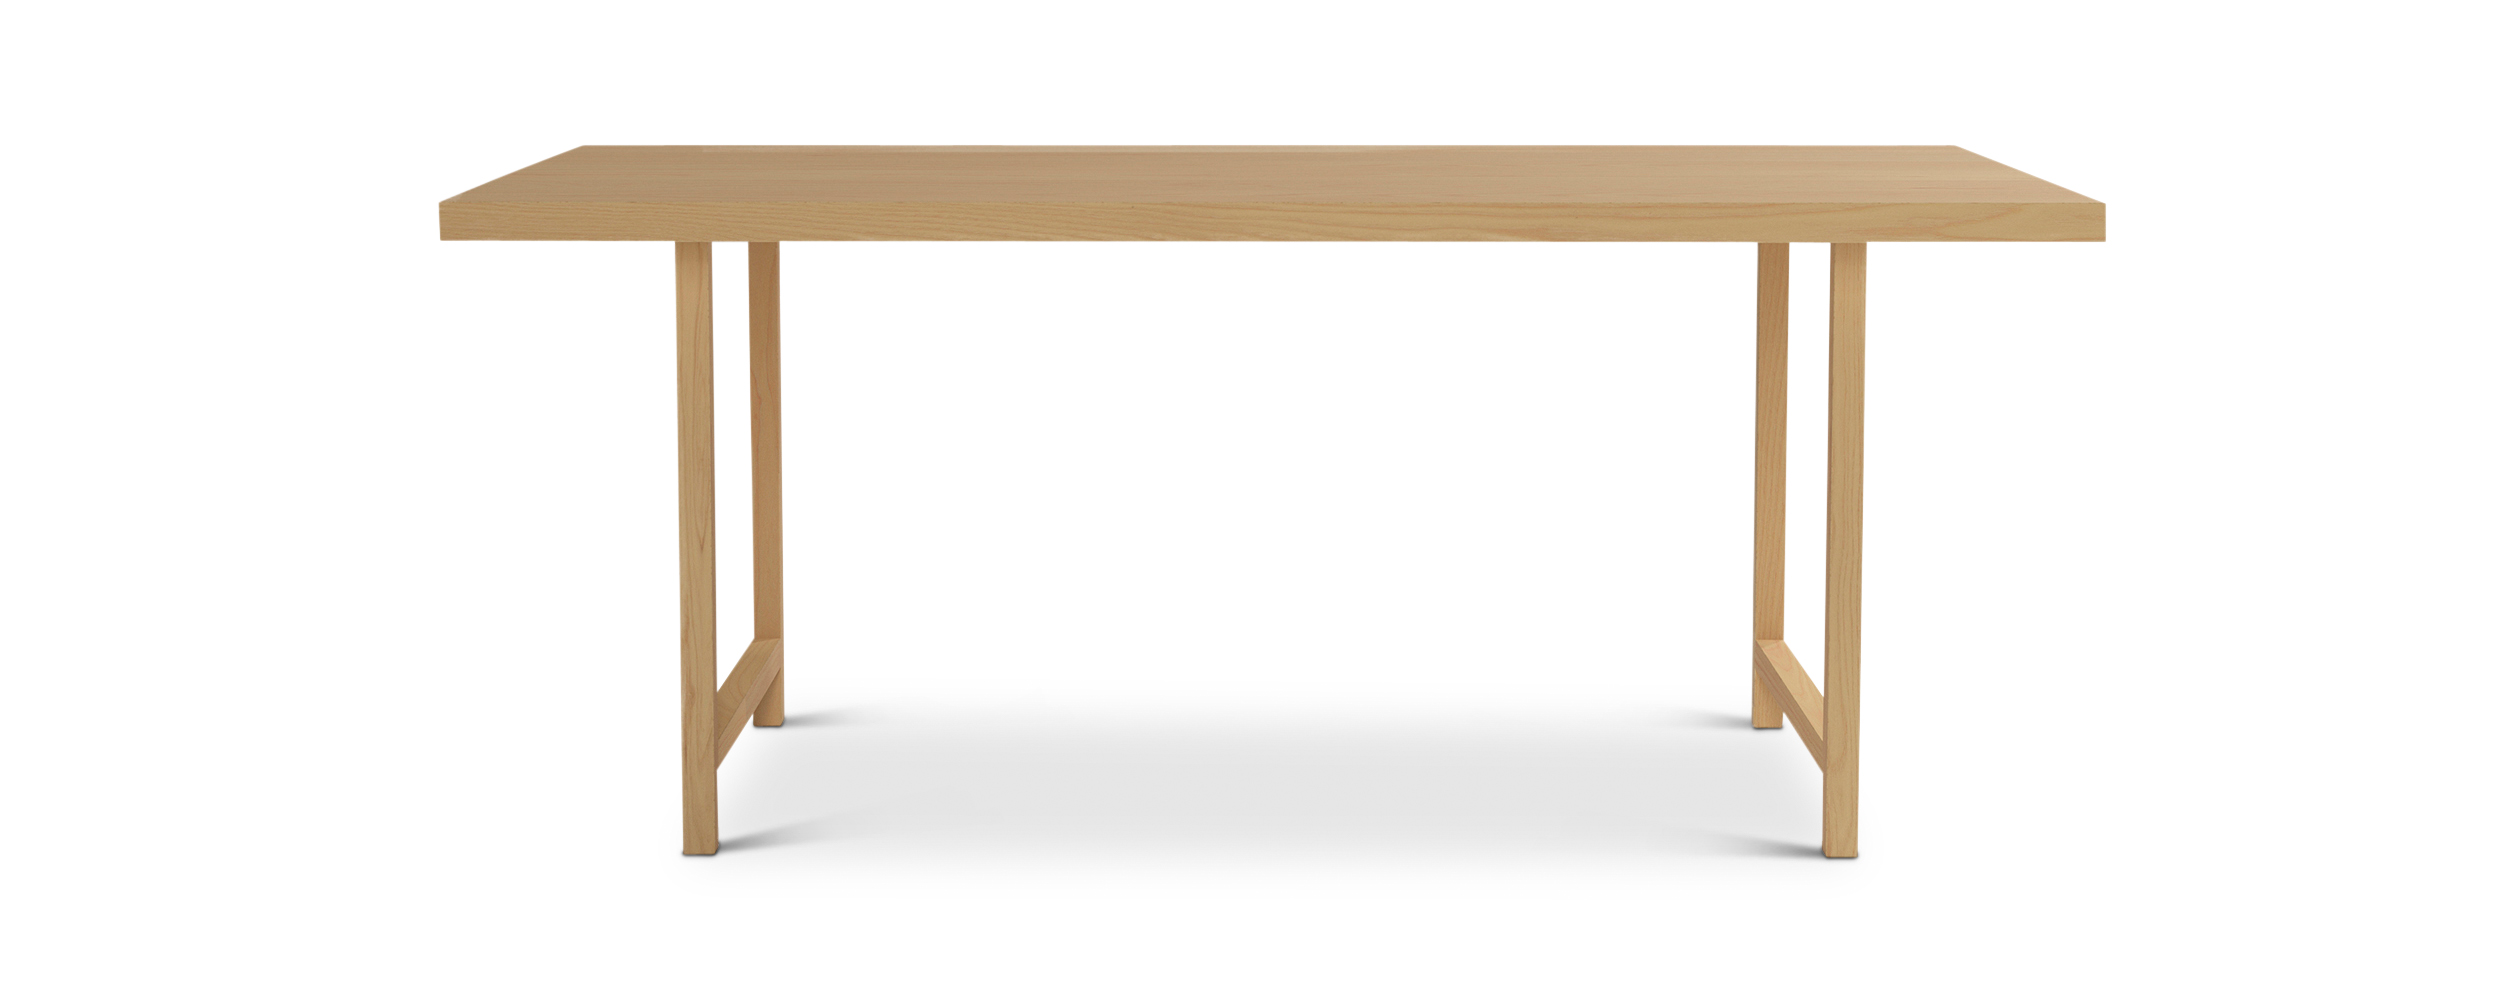 "Series 171 72"" Minimalist Nordic Furniture ash dining table"